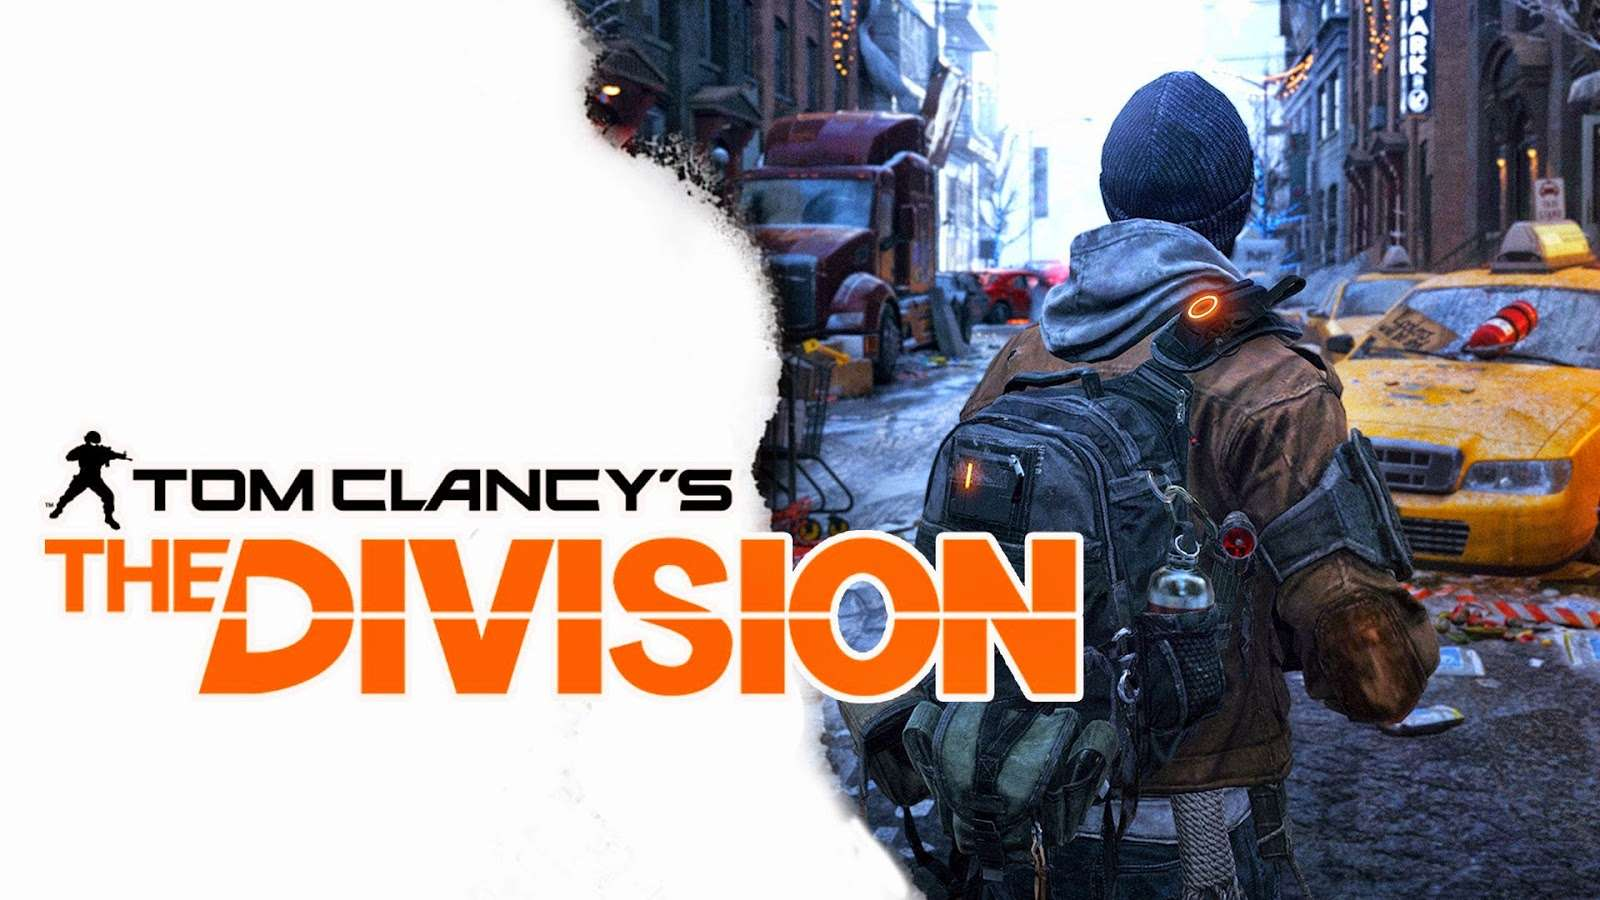 Tom Clancy's The Division CD Key 2016